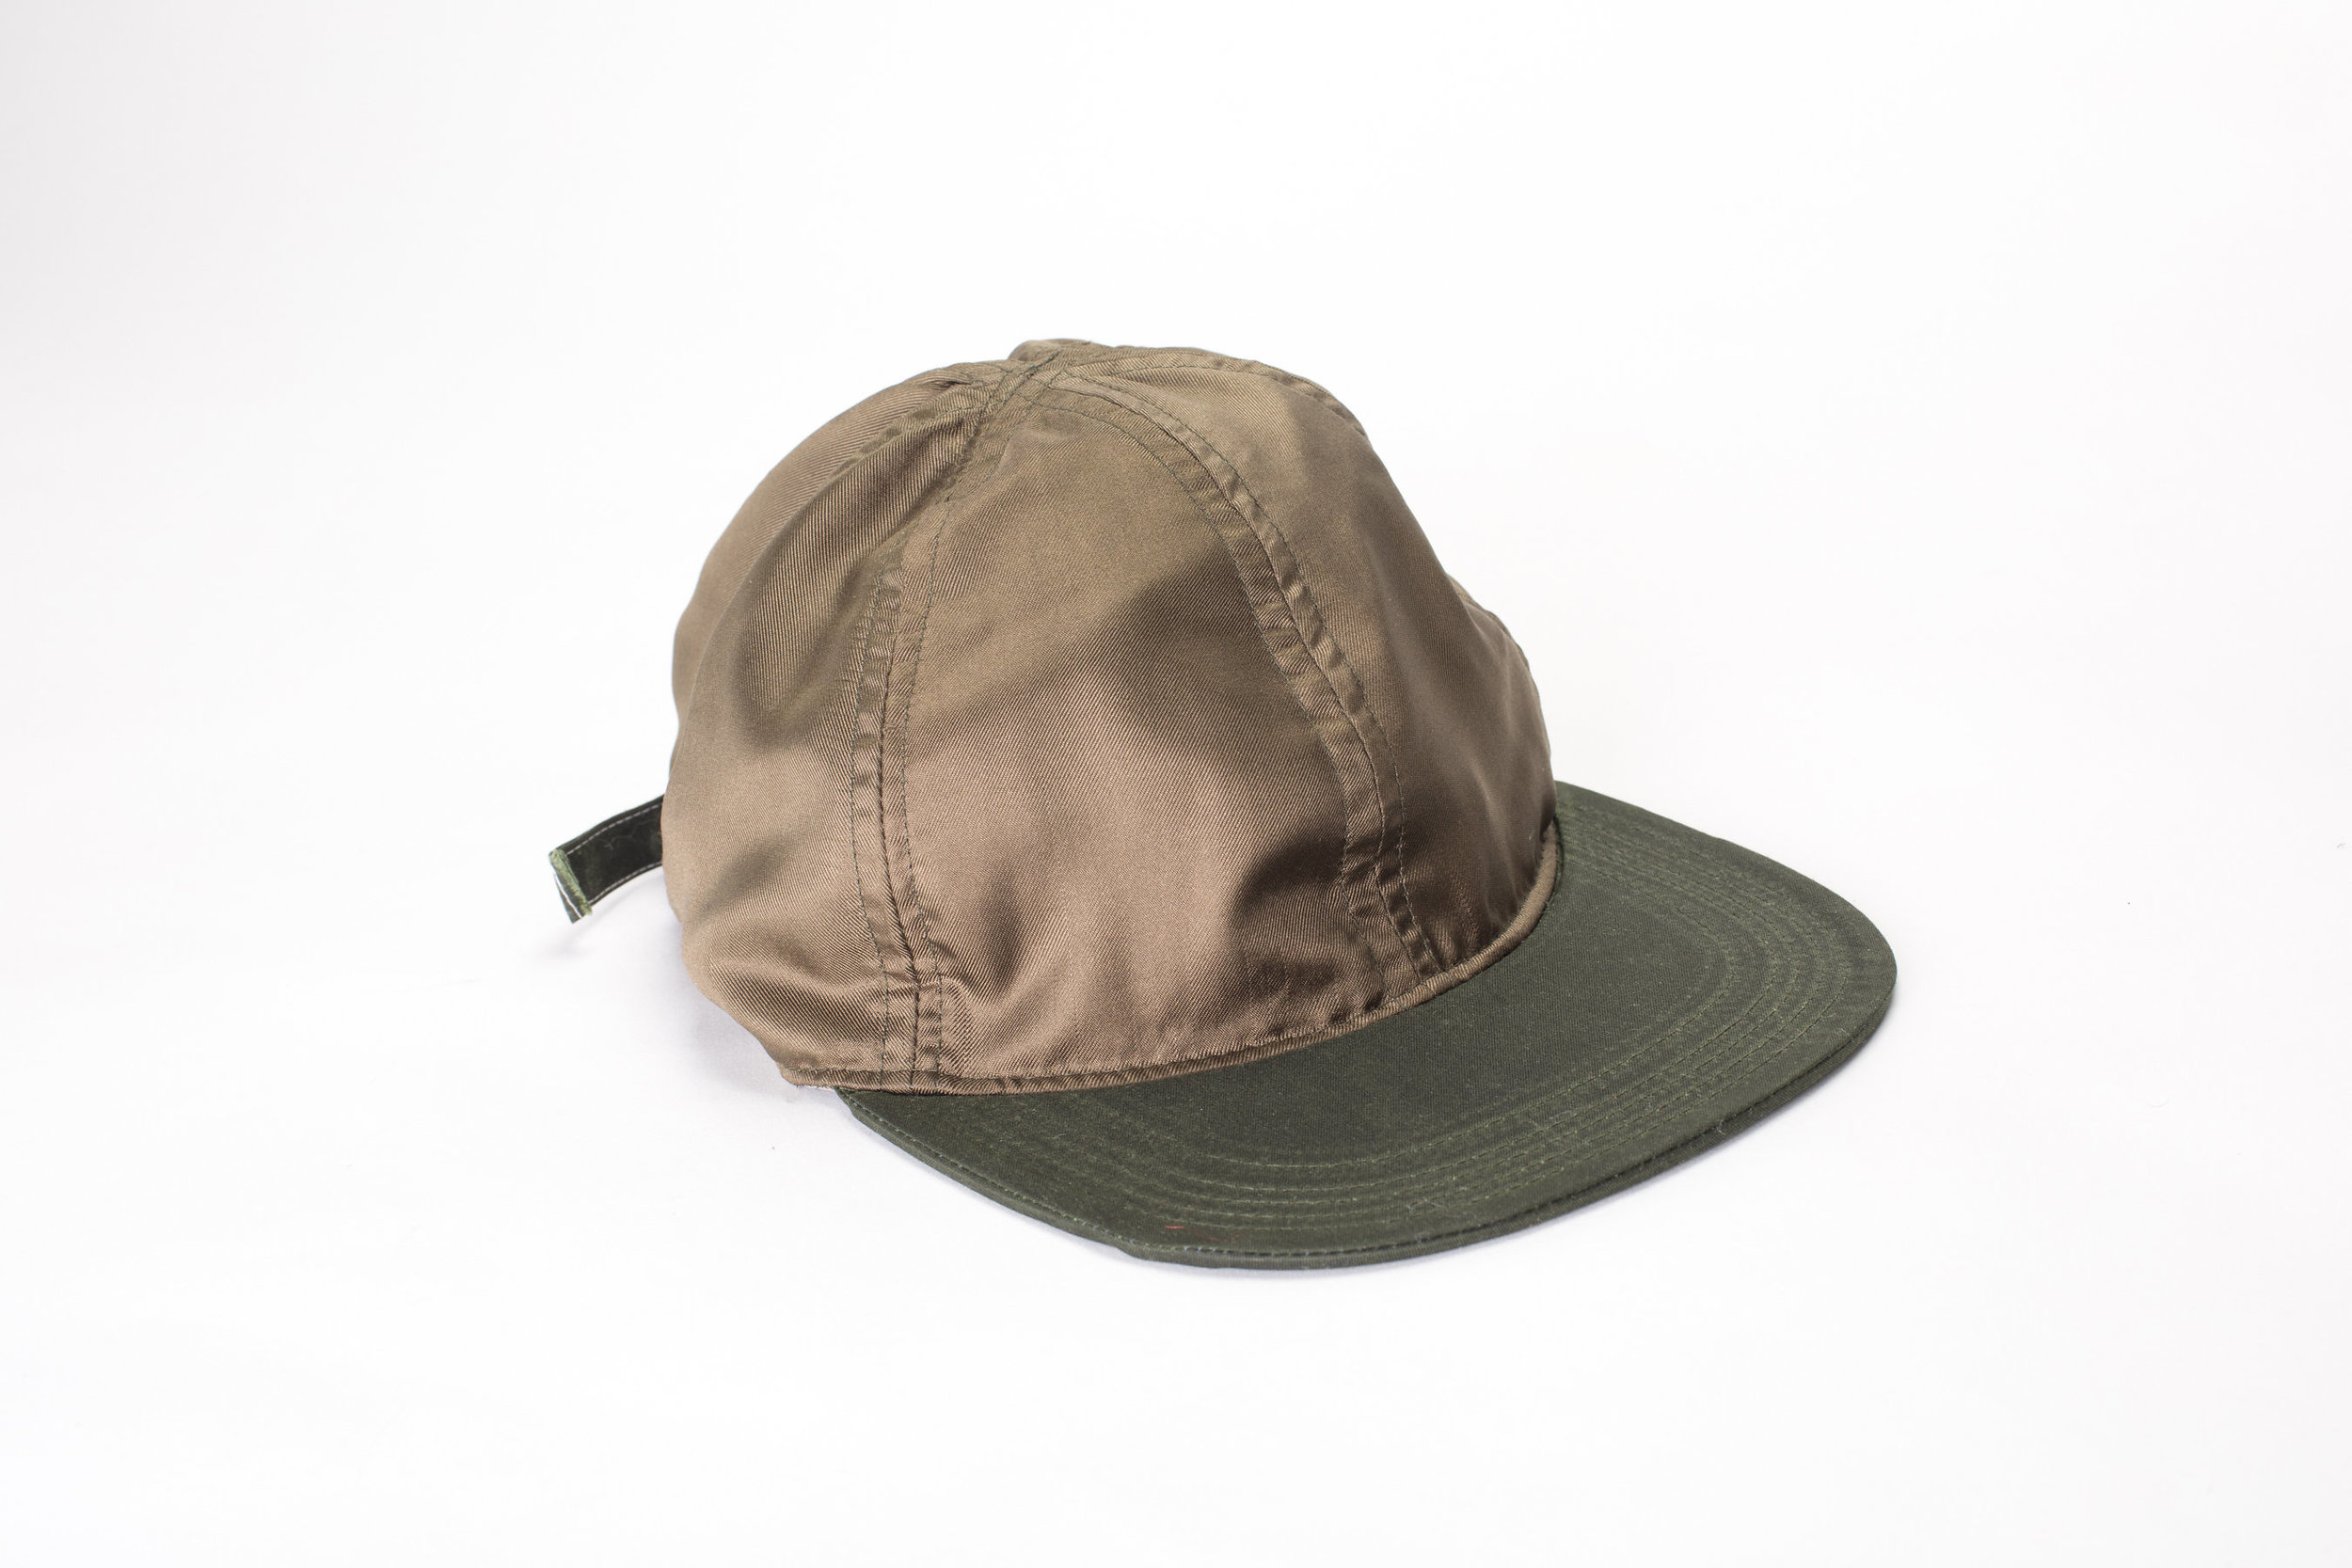 Silk 6 Panel/Waxed Cotton Brim